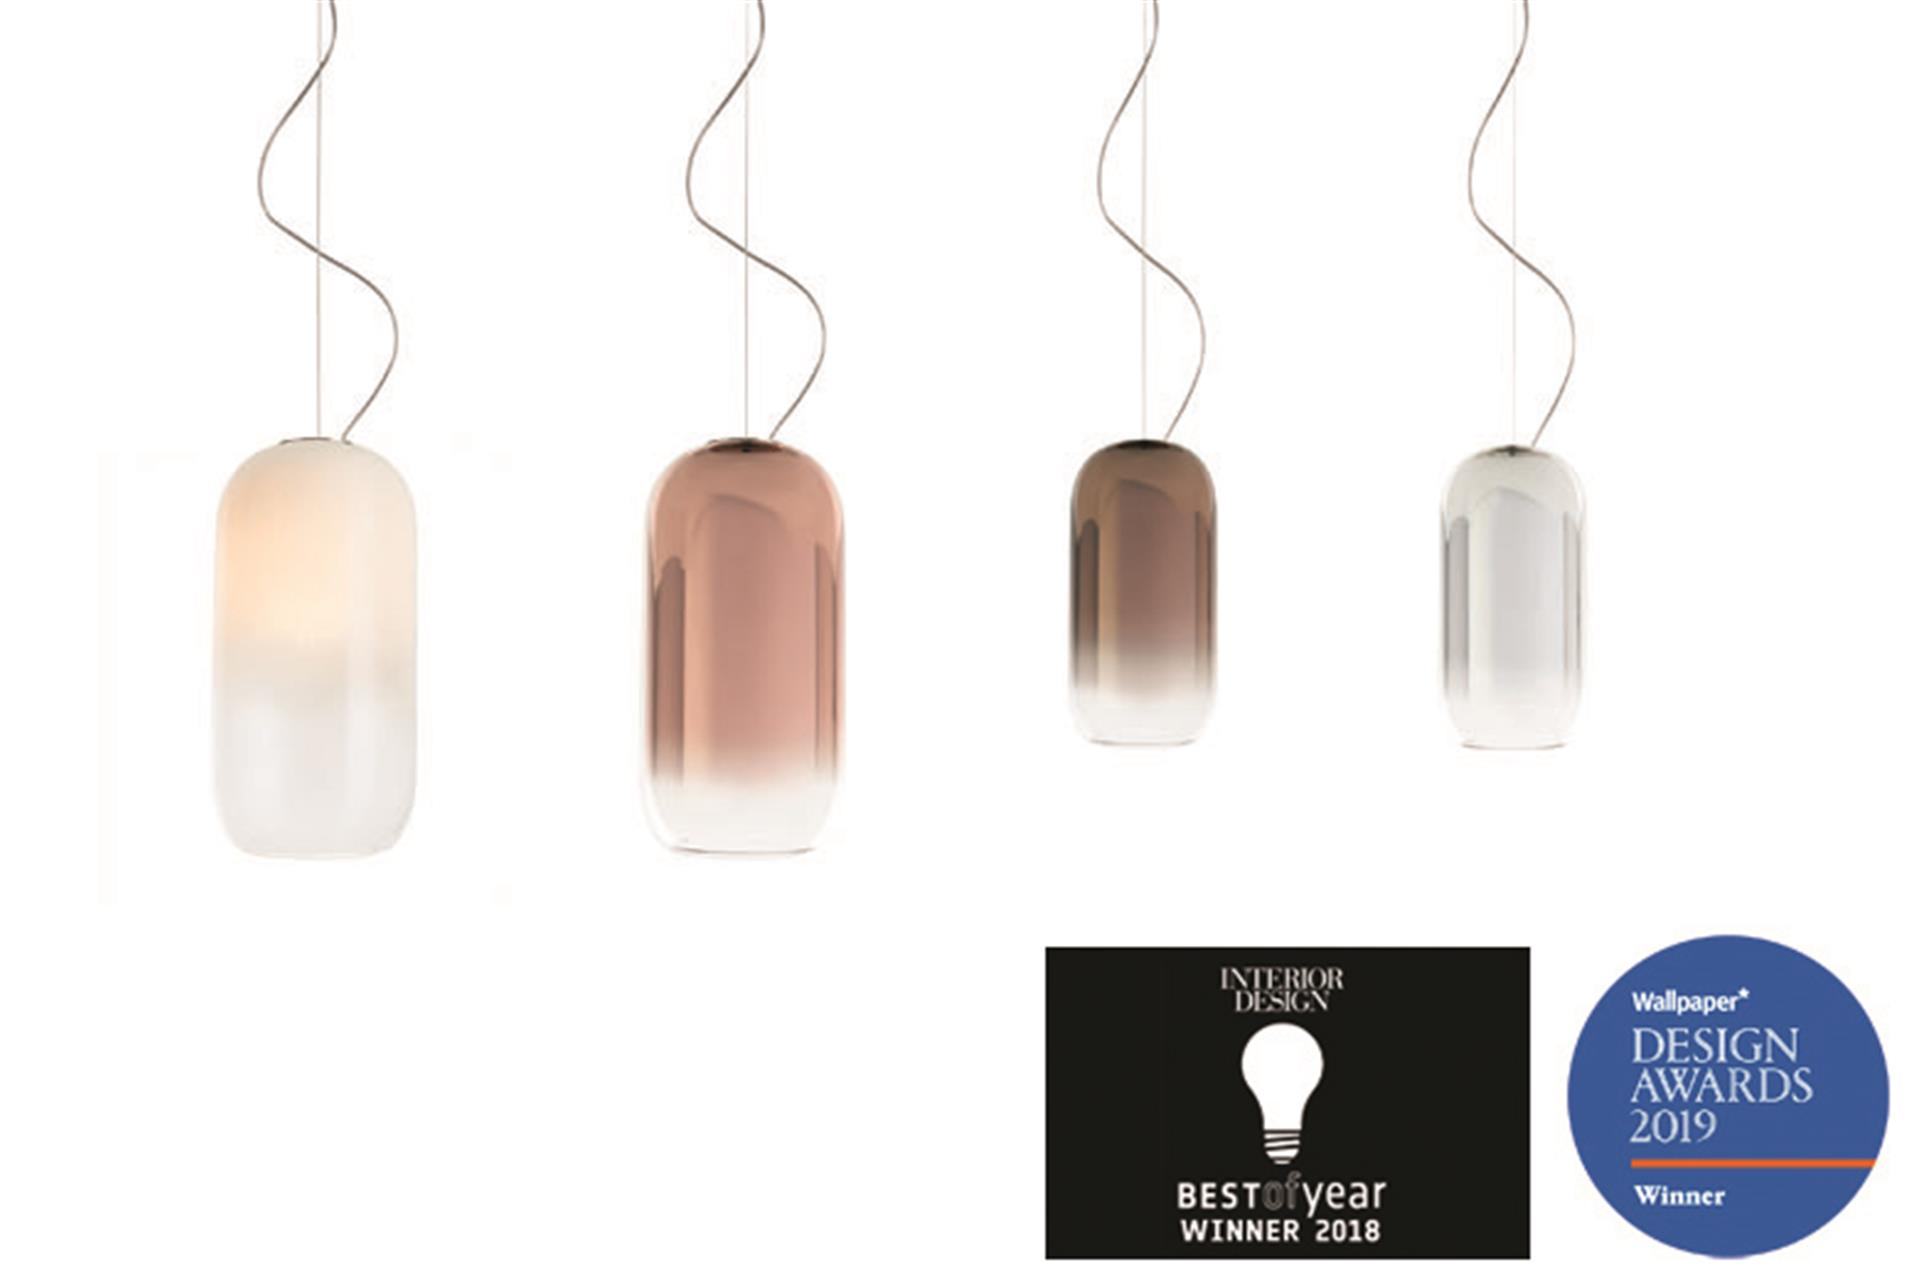 Gople Wins The Interior Design Best Of Year Awards 2018 And The Wallpaper Design Award 2019 Prolight